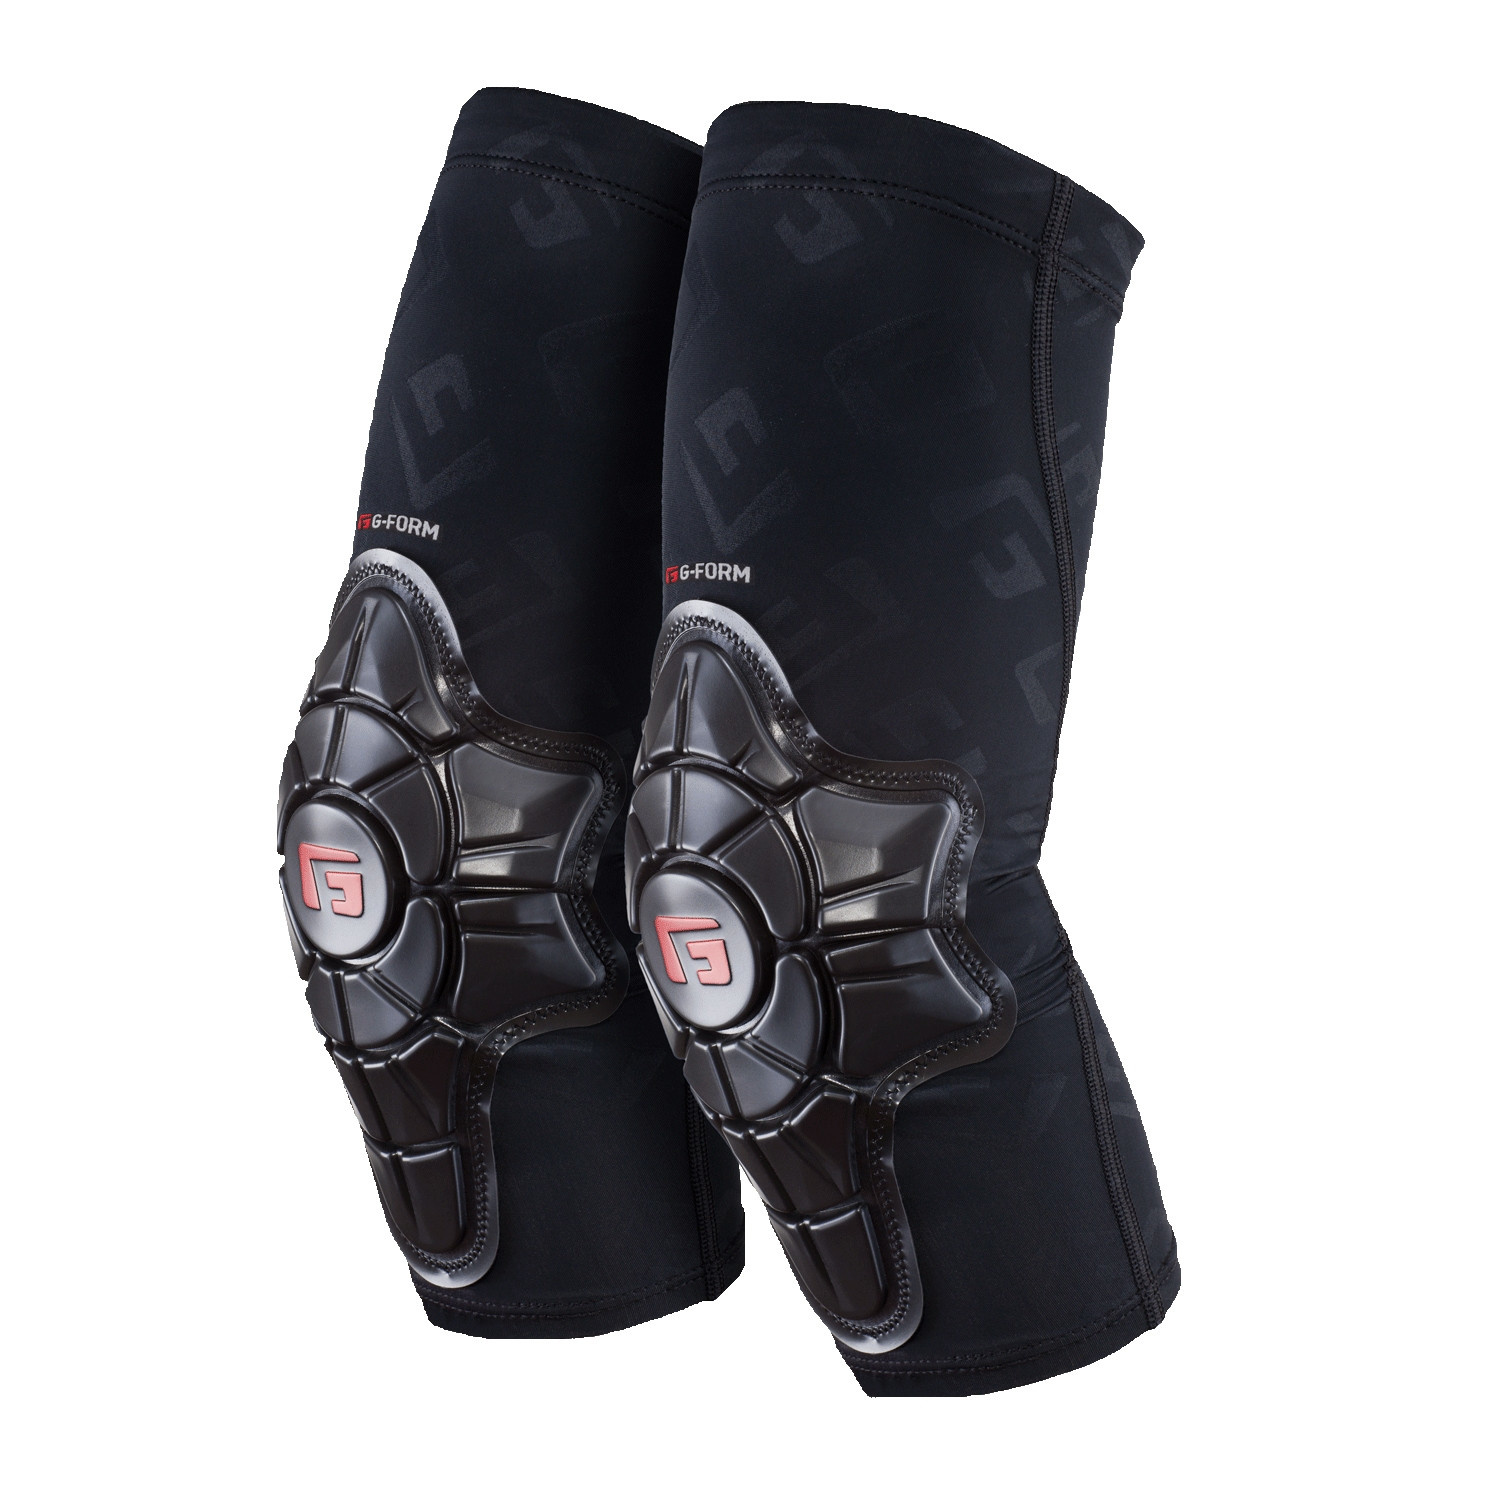 G-Form G-Form Pro-X2 youth elbow pad